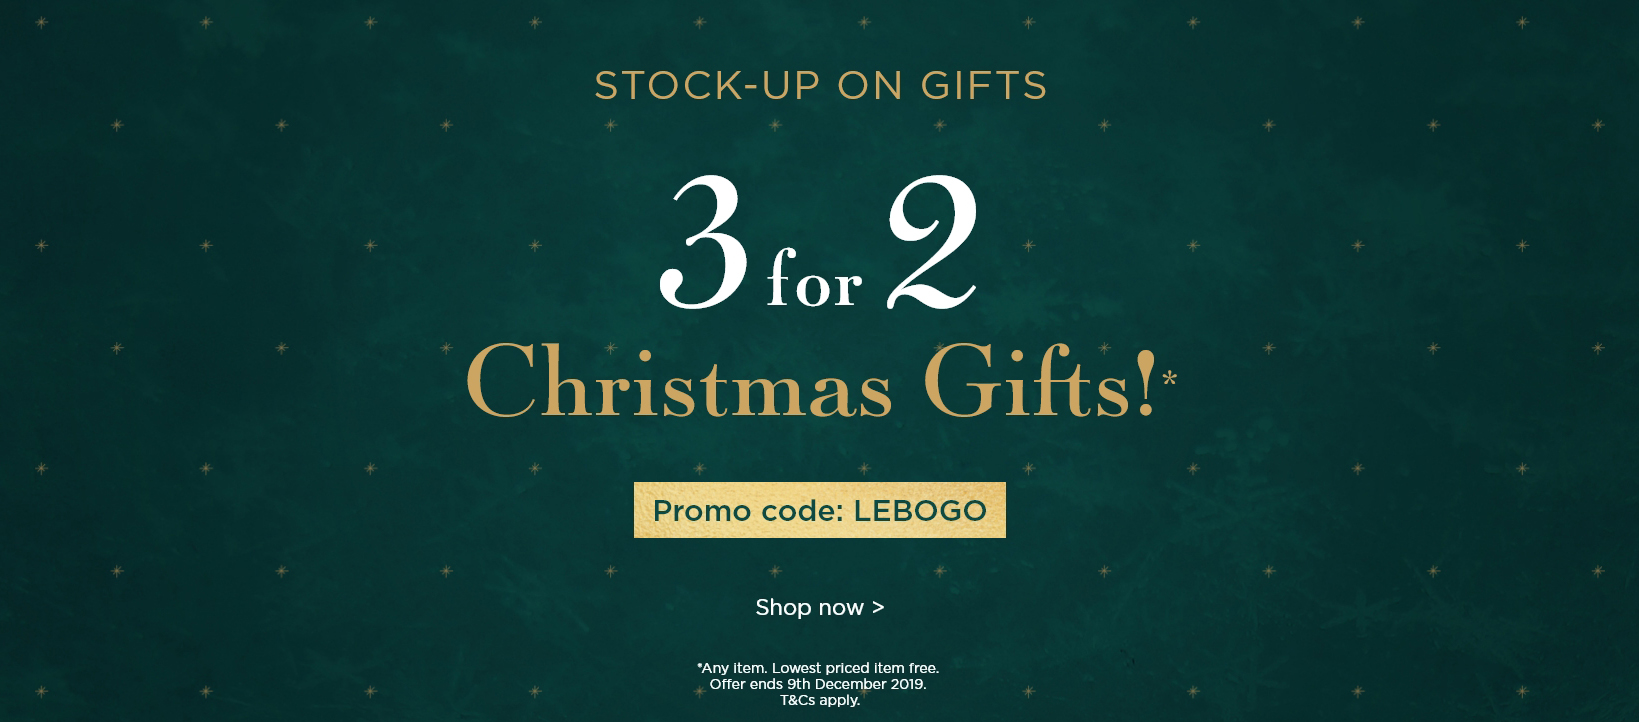 3 For 2 Christmas Gifts!